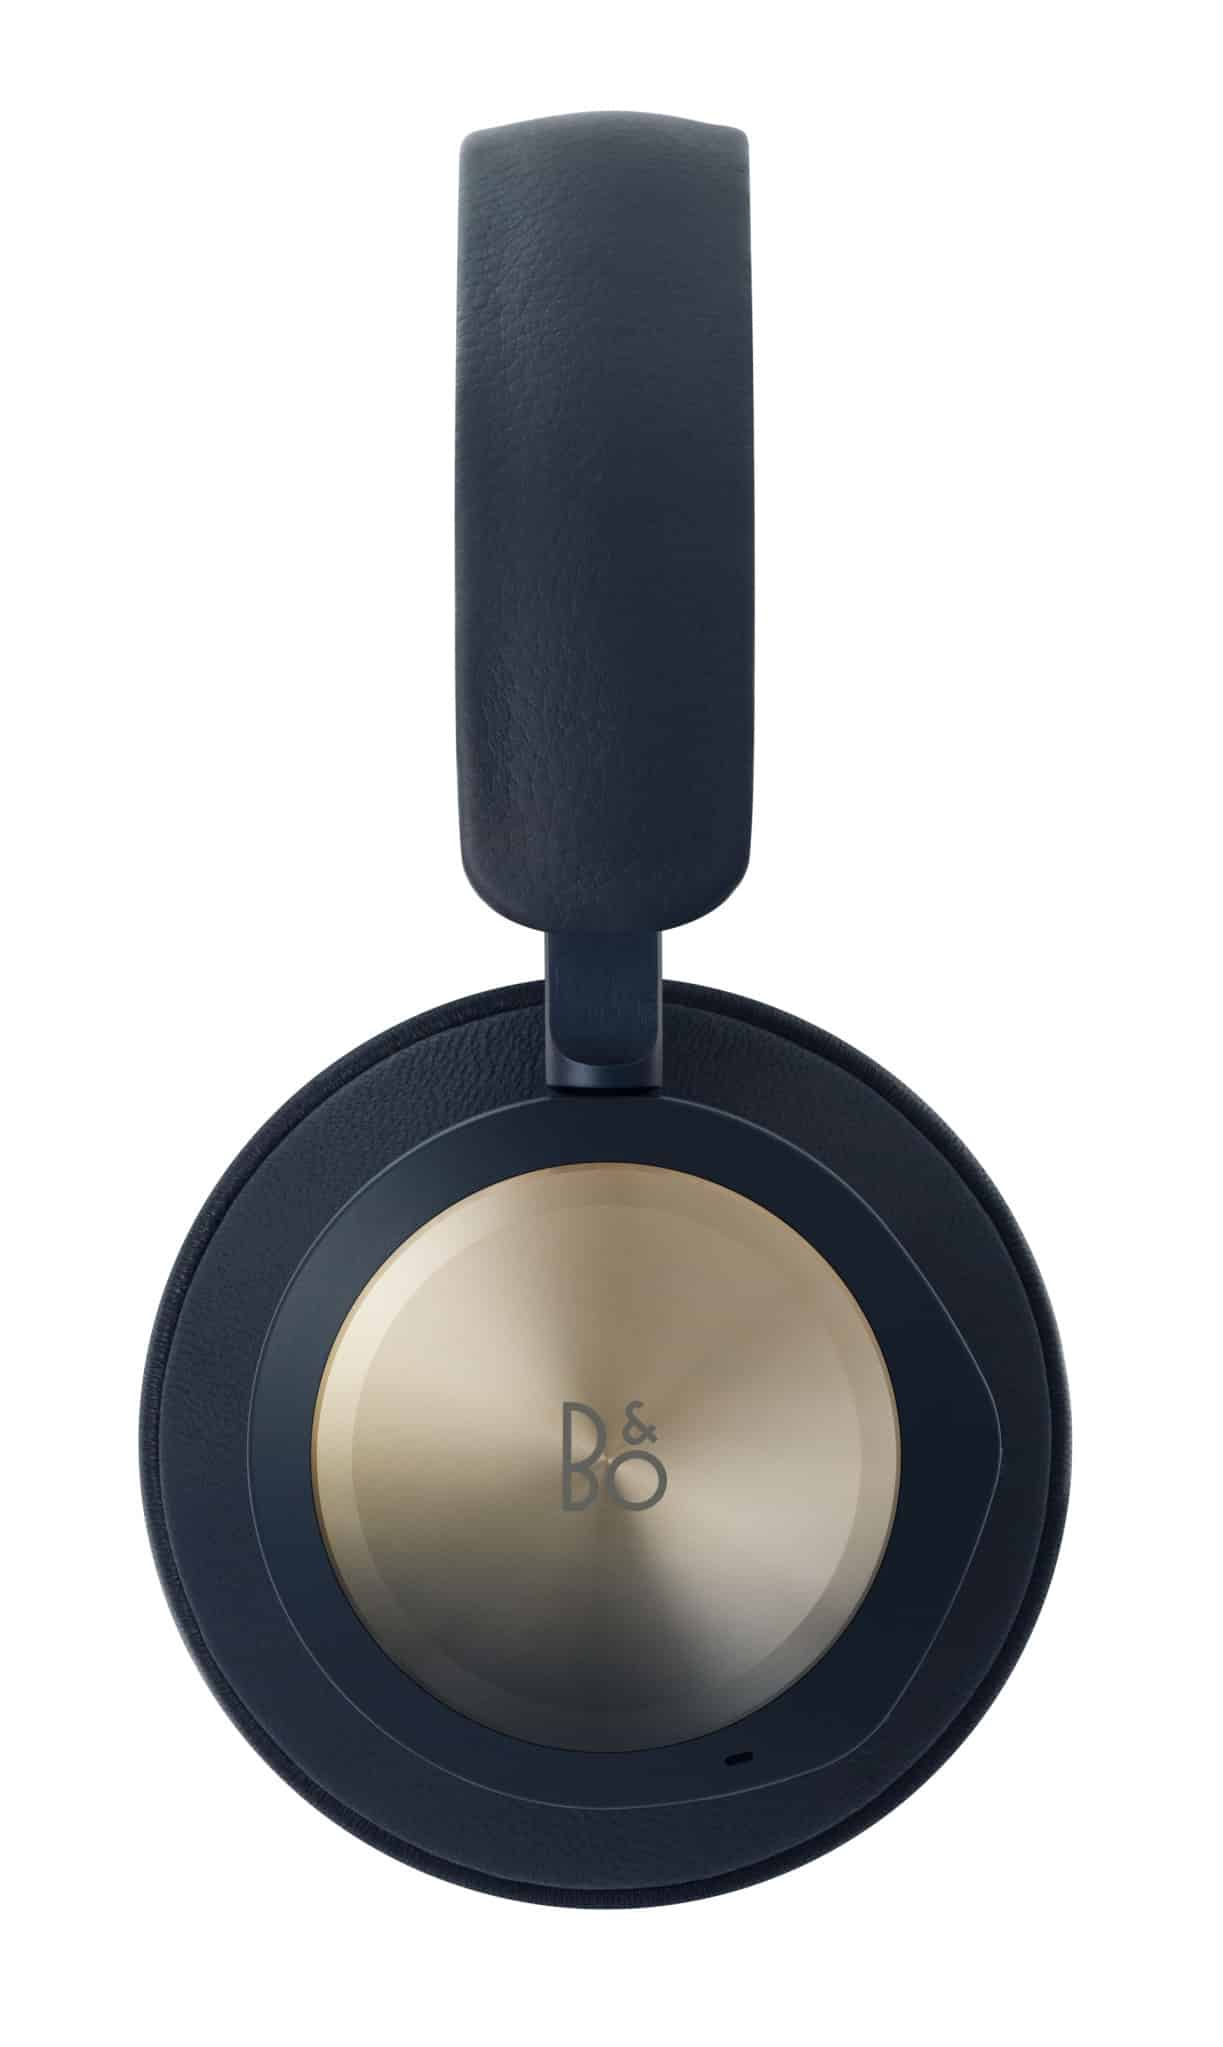 Bang Olufsen Beoplay Portal For Xbox Headpgones 3